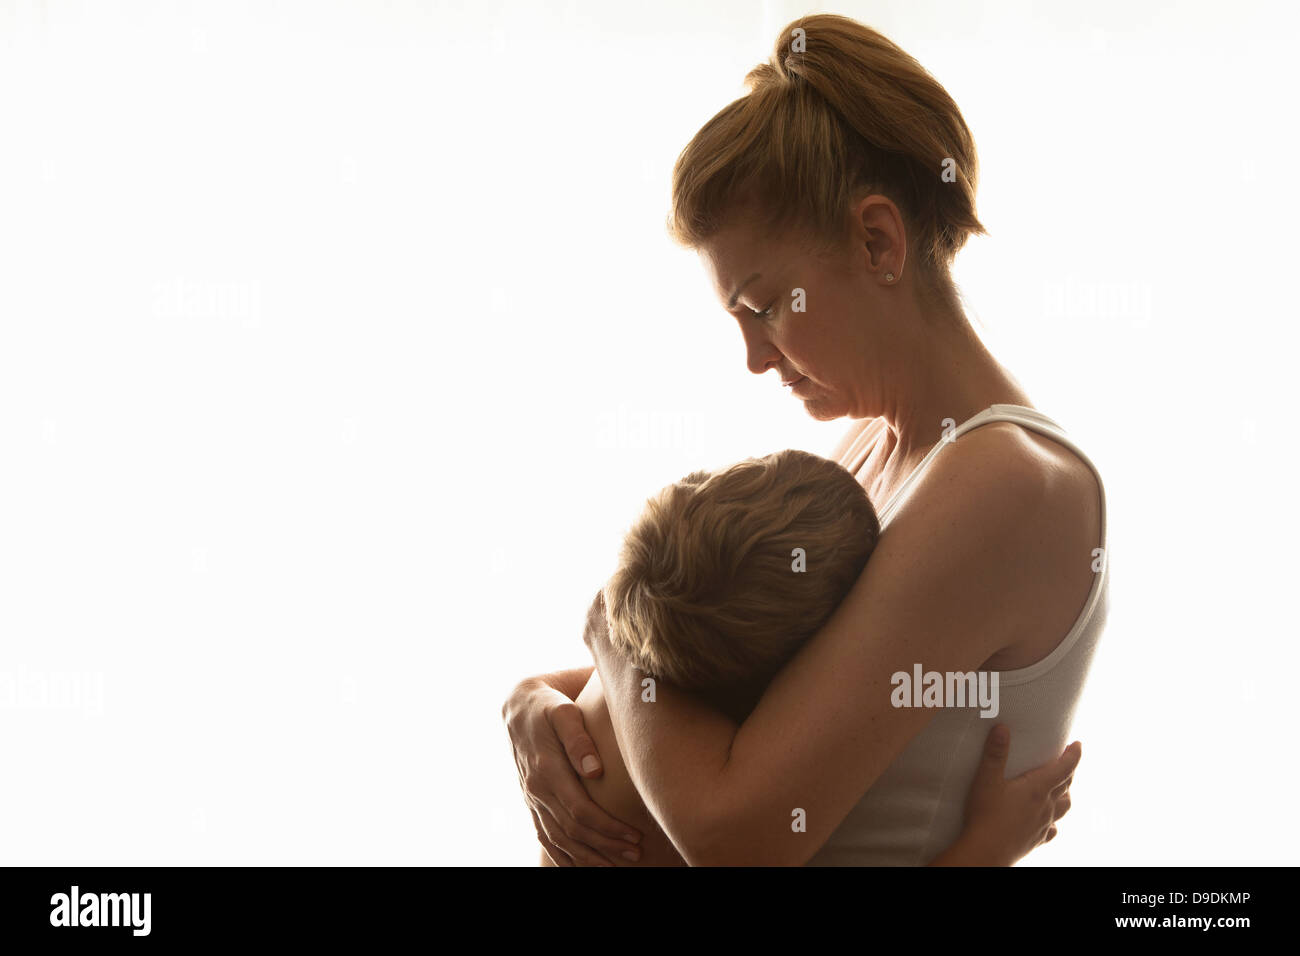 Mother hugging son Photo Stock